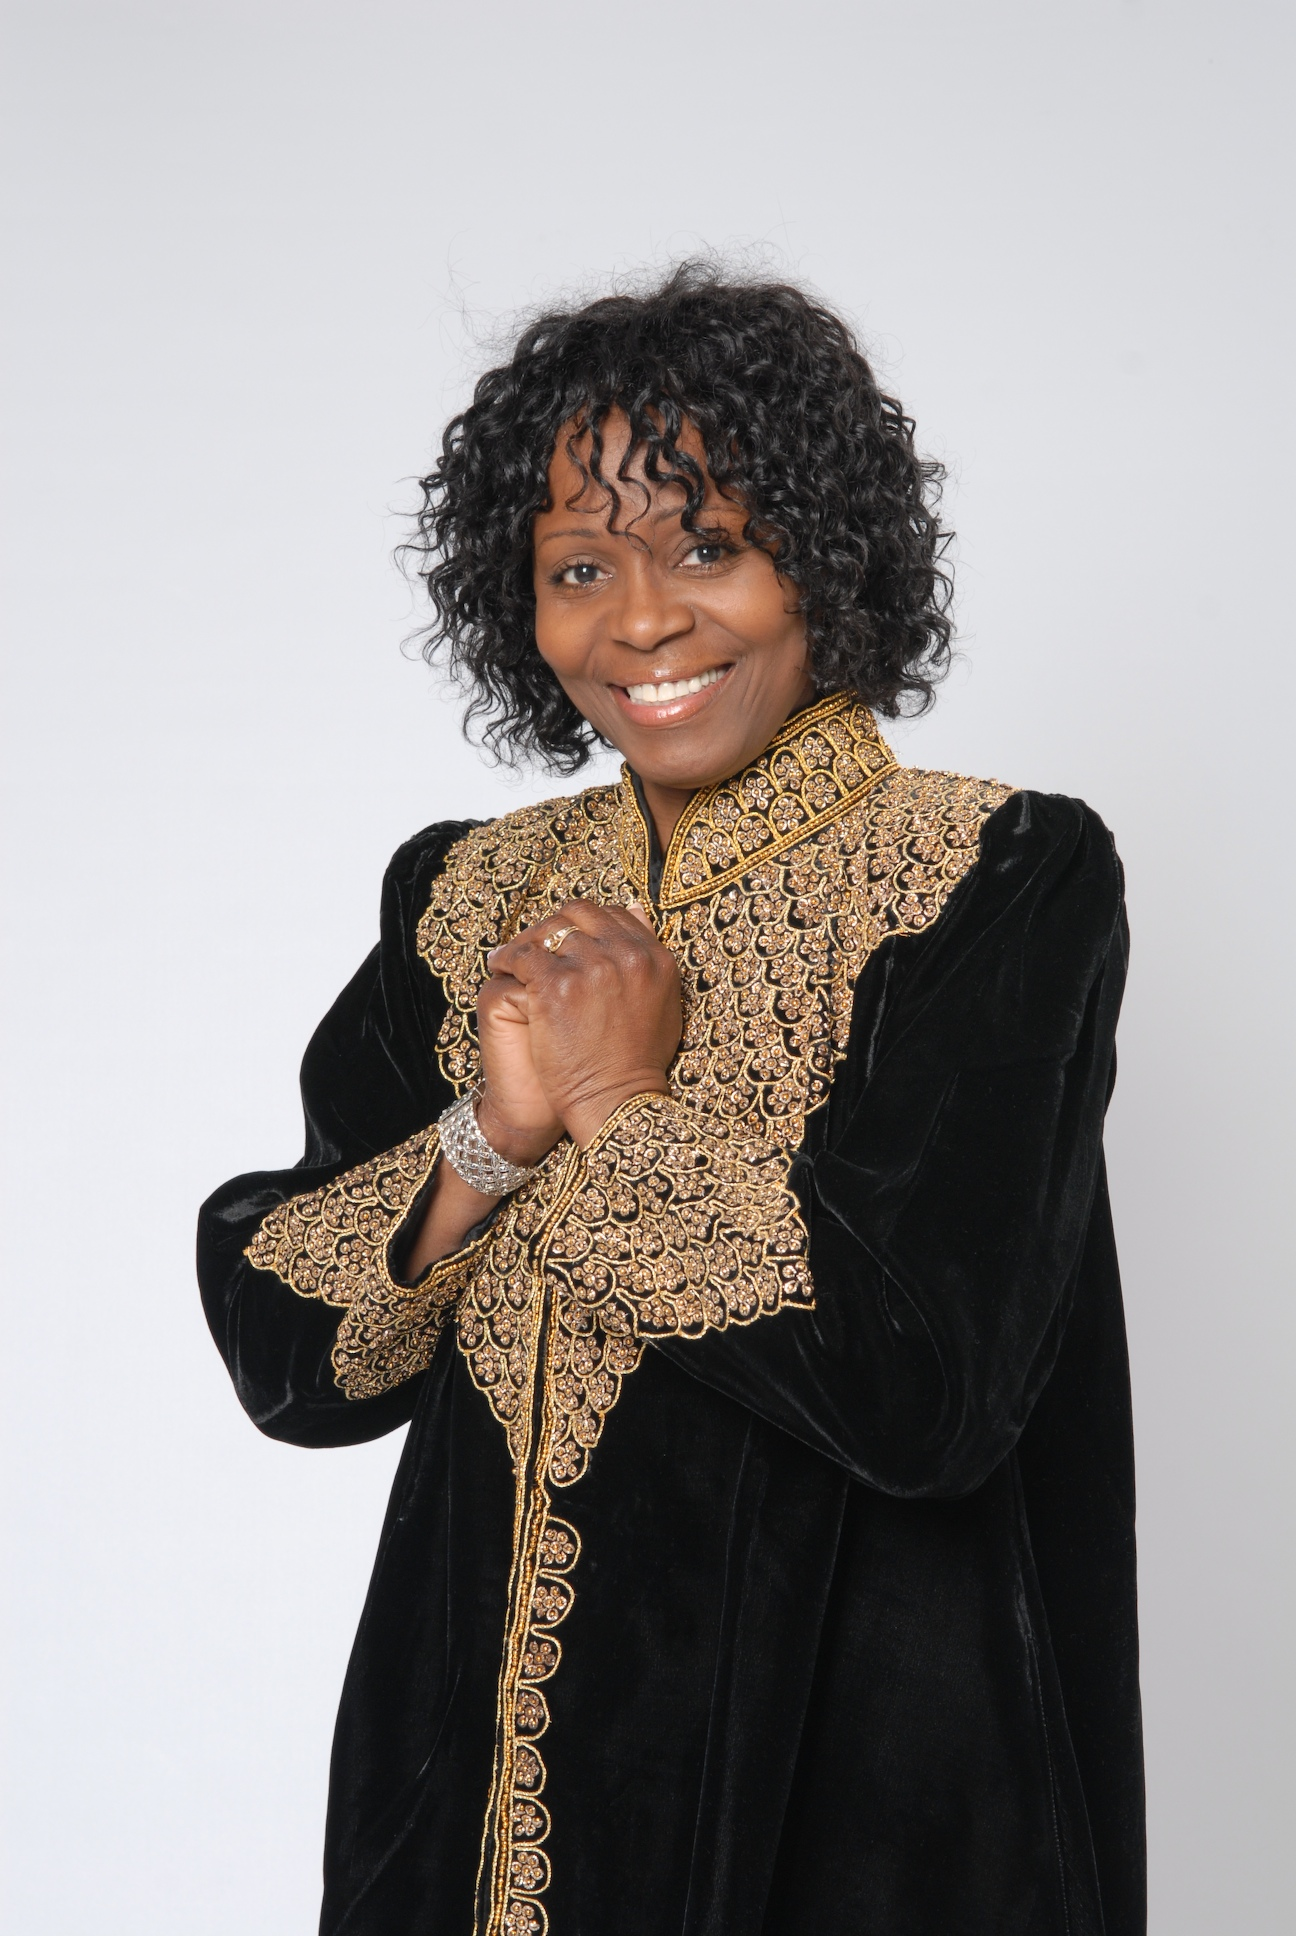 Apostle Sharon Render Johnson